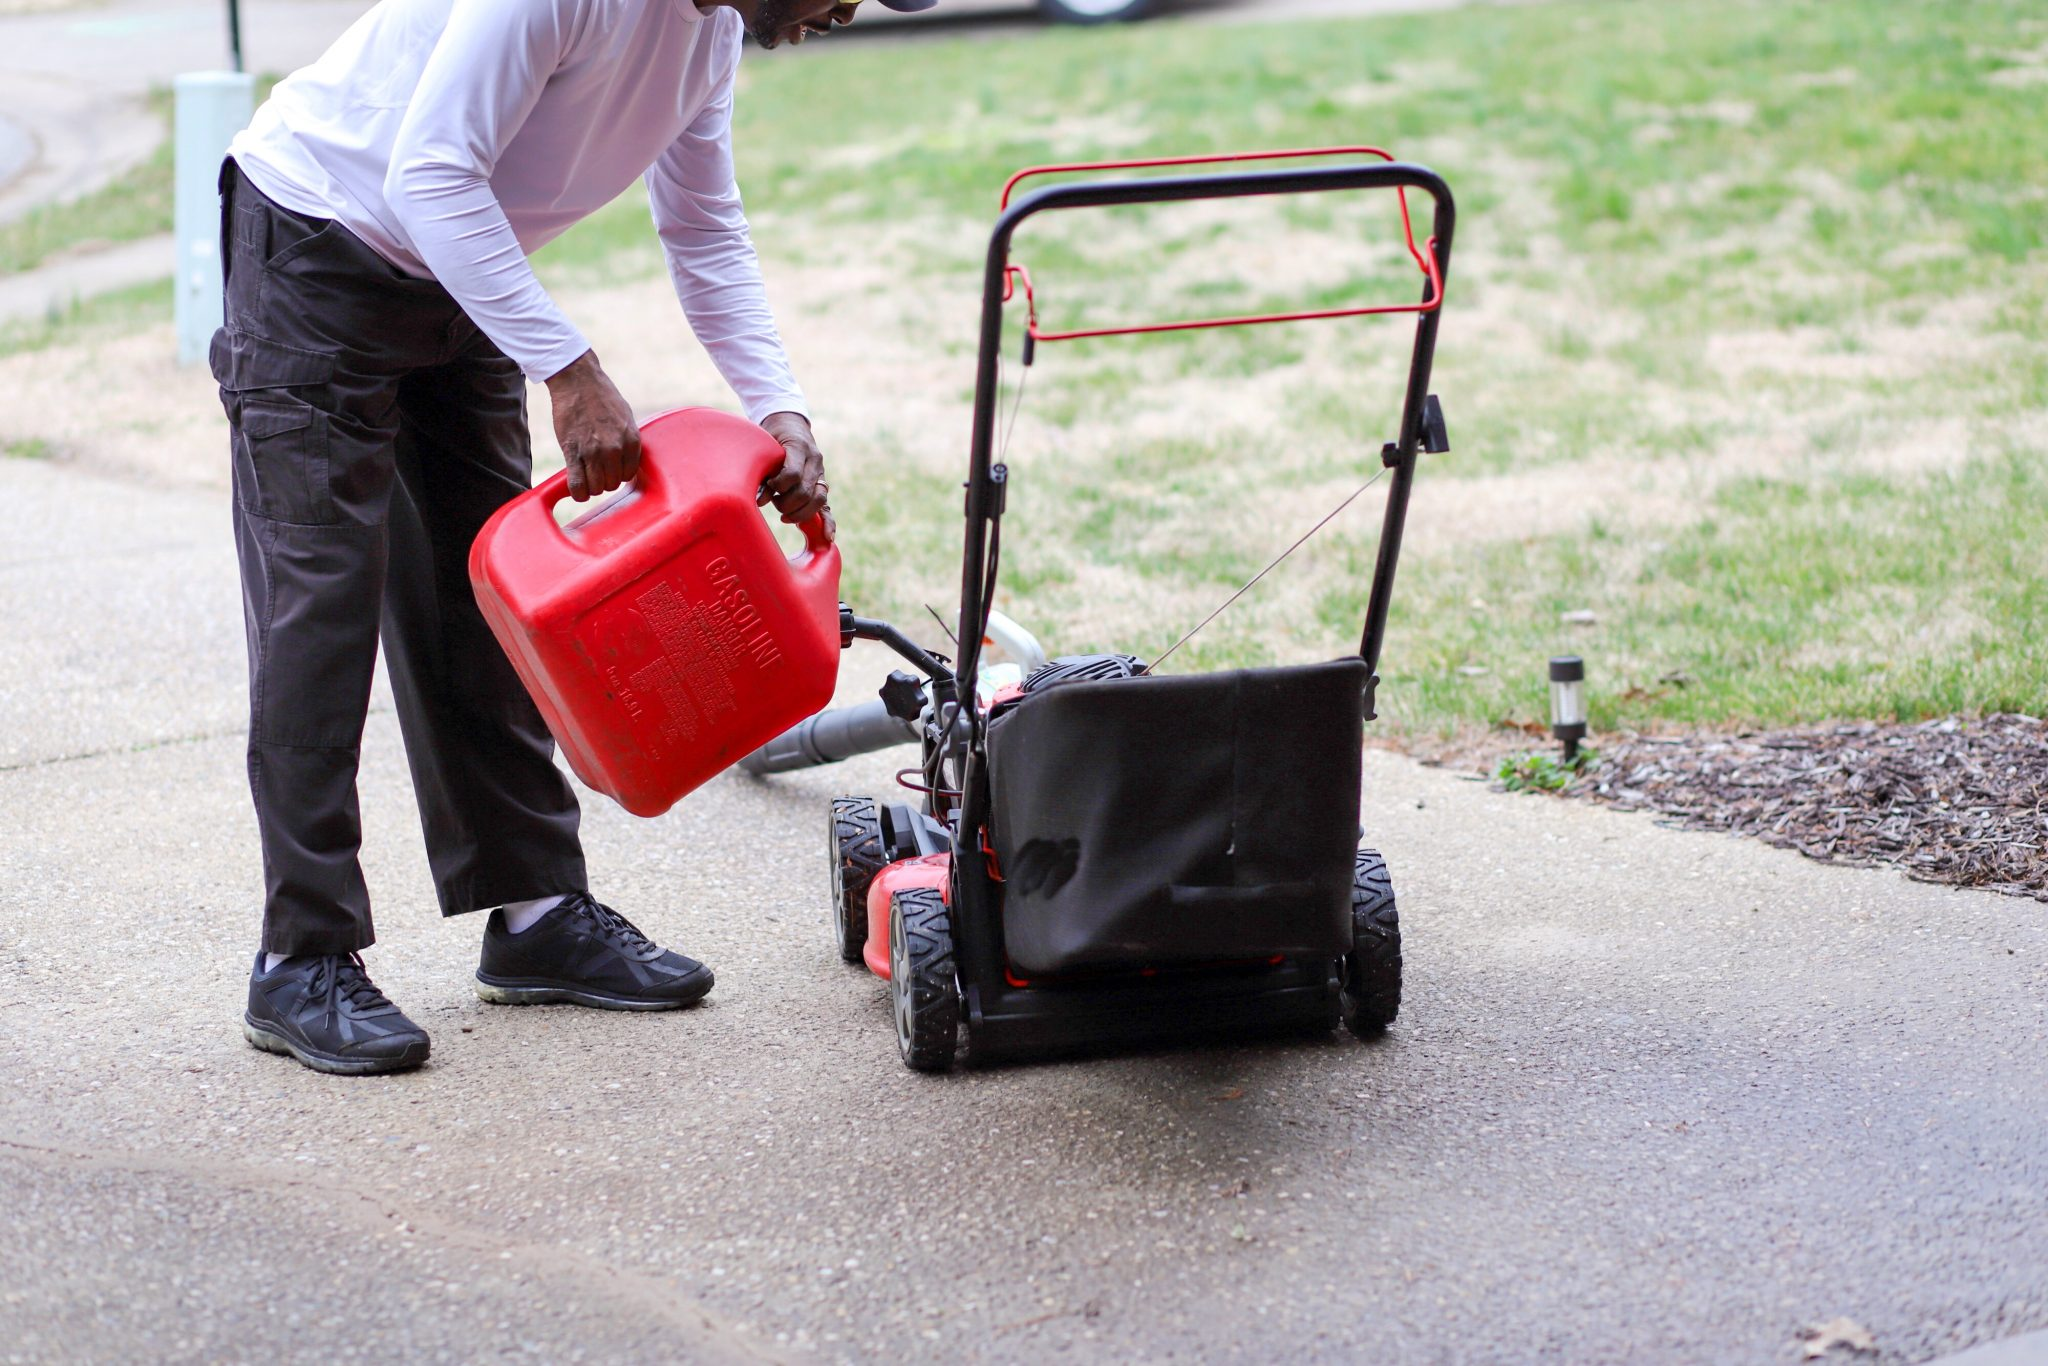 African-American man adding fuel to a lawnmower